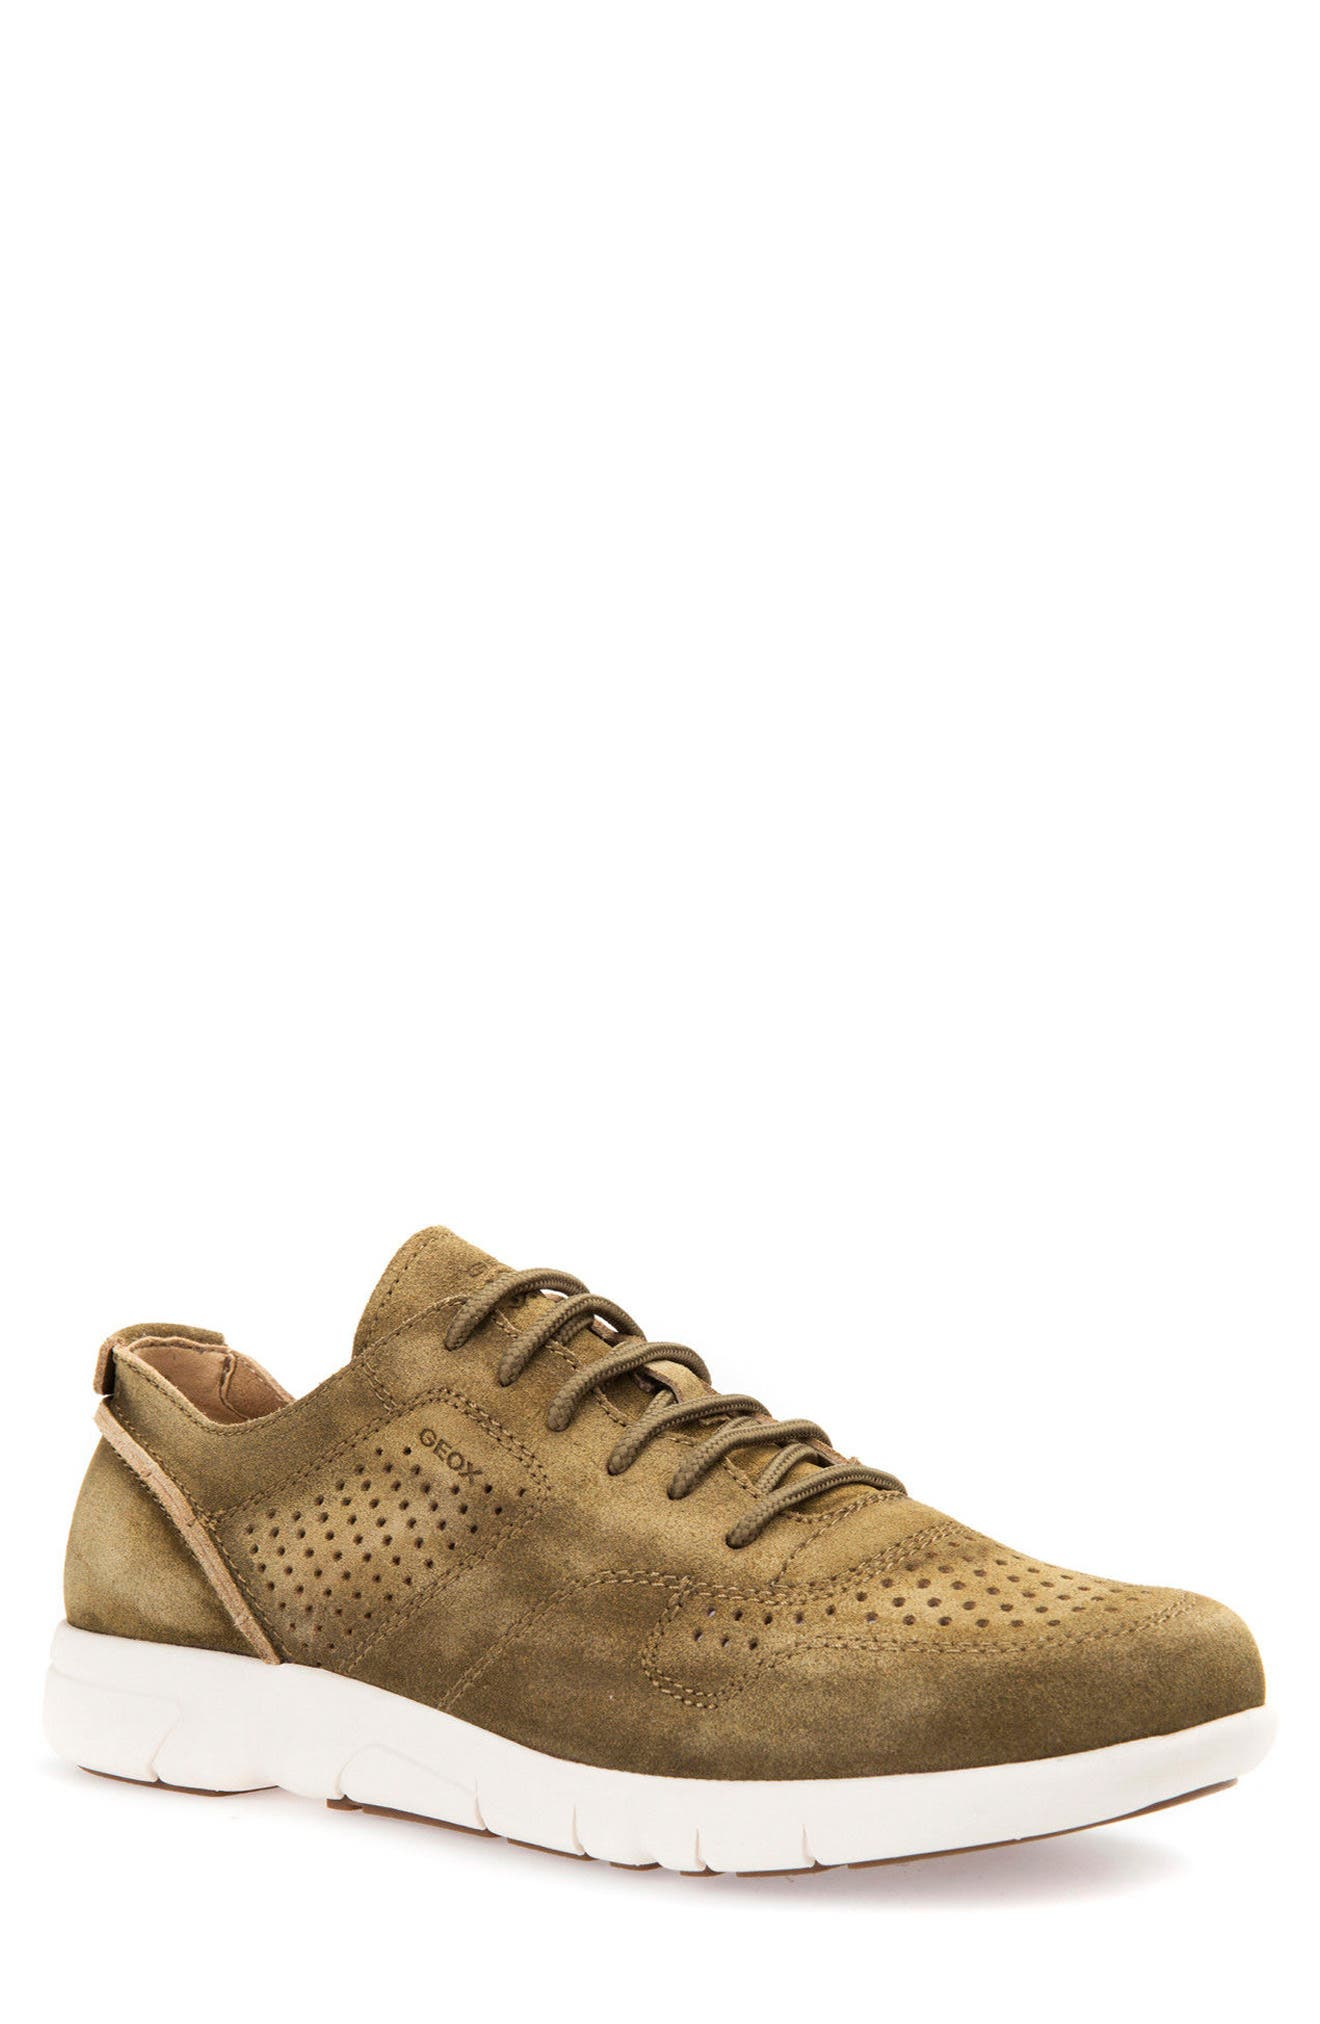 Alternate Image 1 Selected - Geox Brattley 2 Perforated Sneaker (Men)